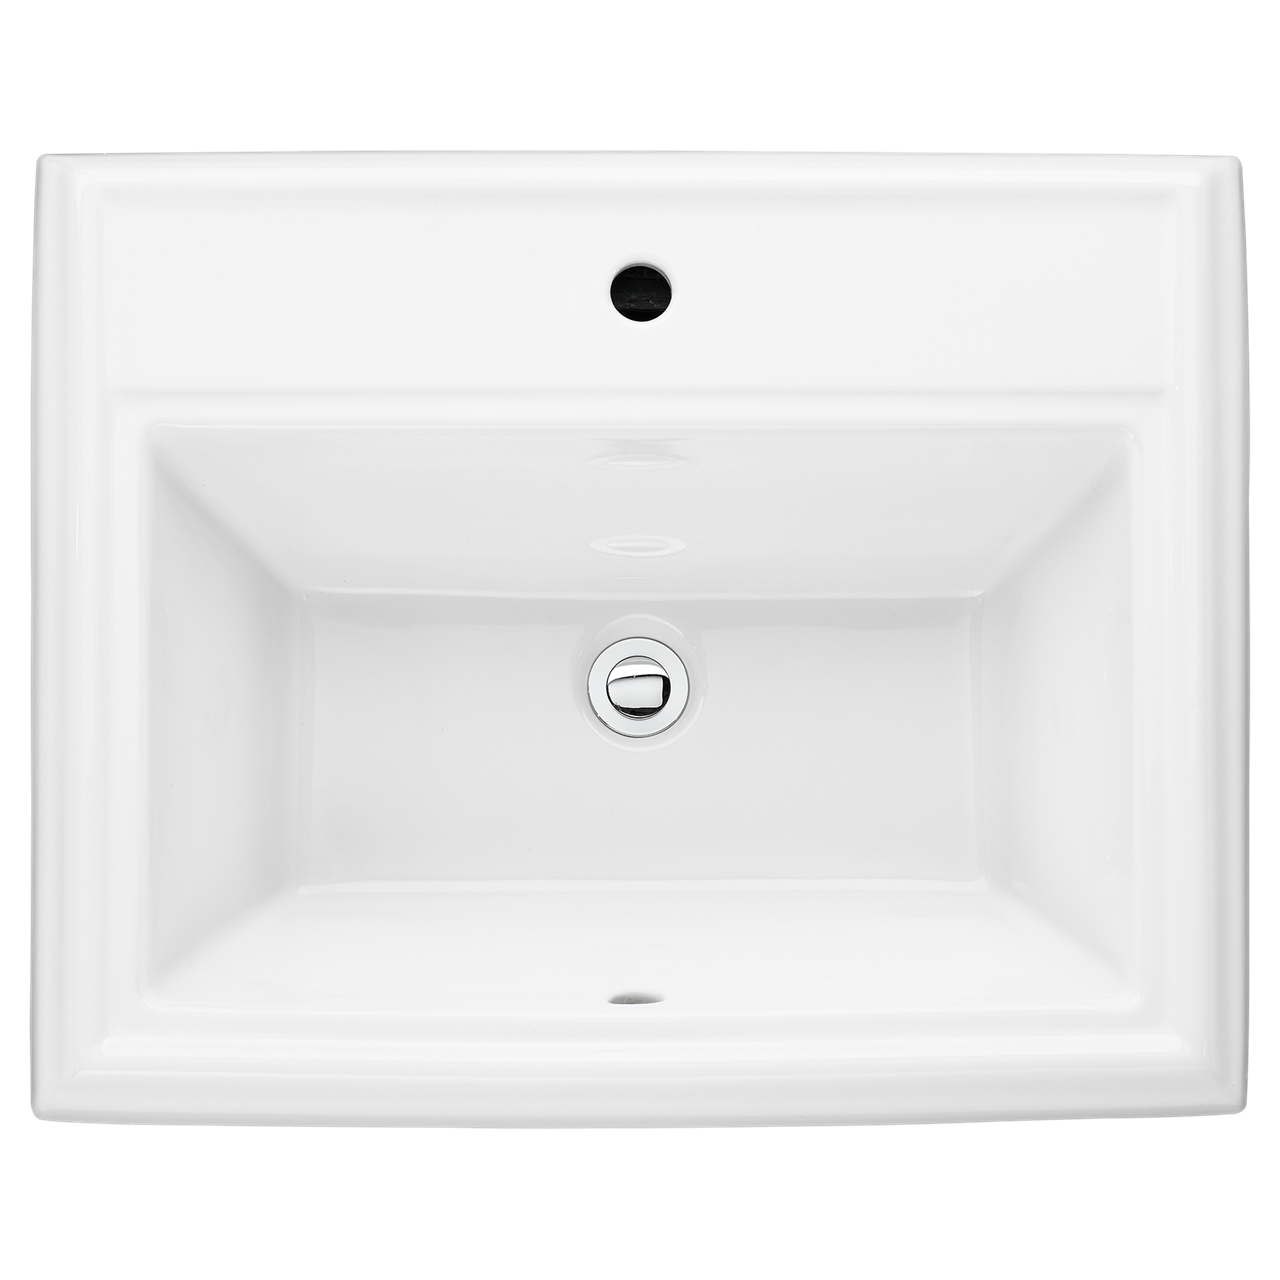 Bathroom Sinks Town Square Countertop Sink White Drop In